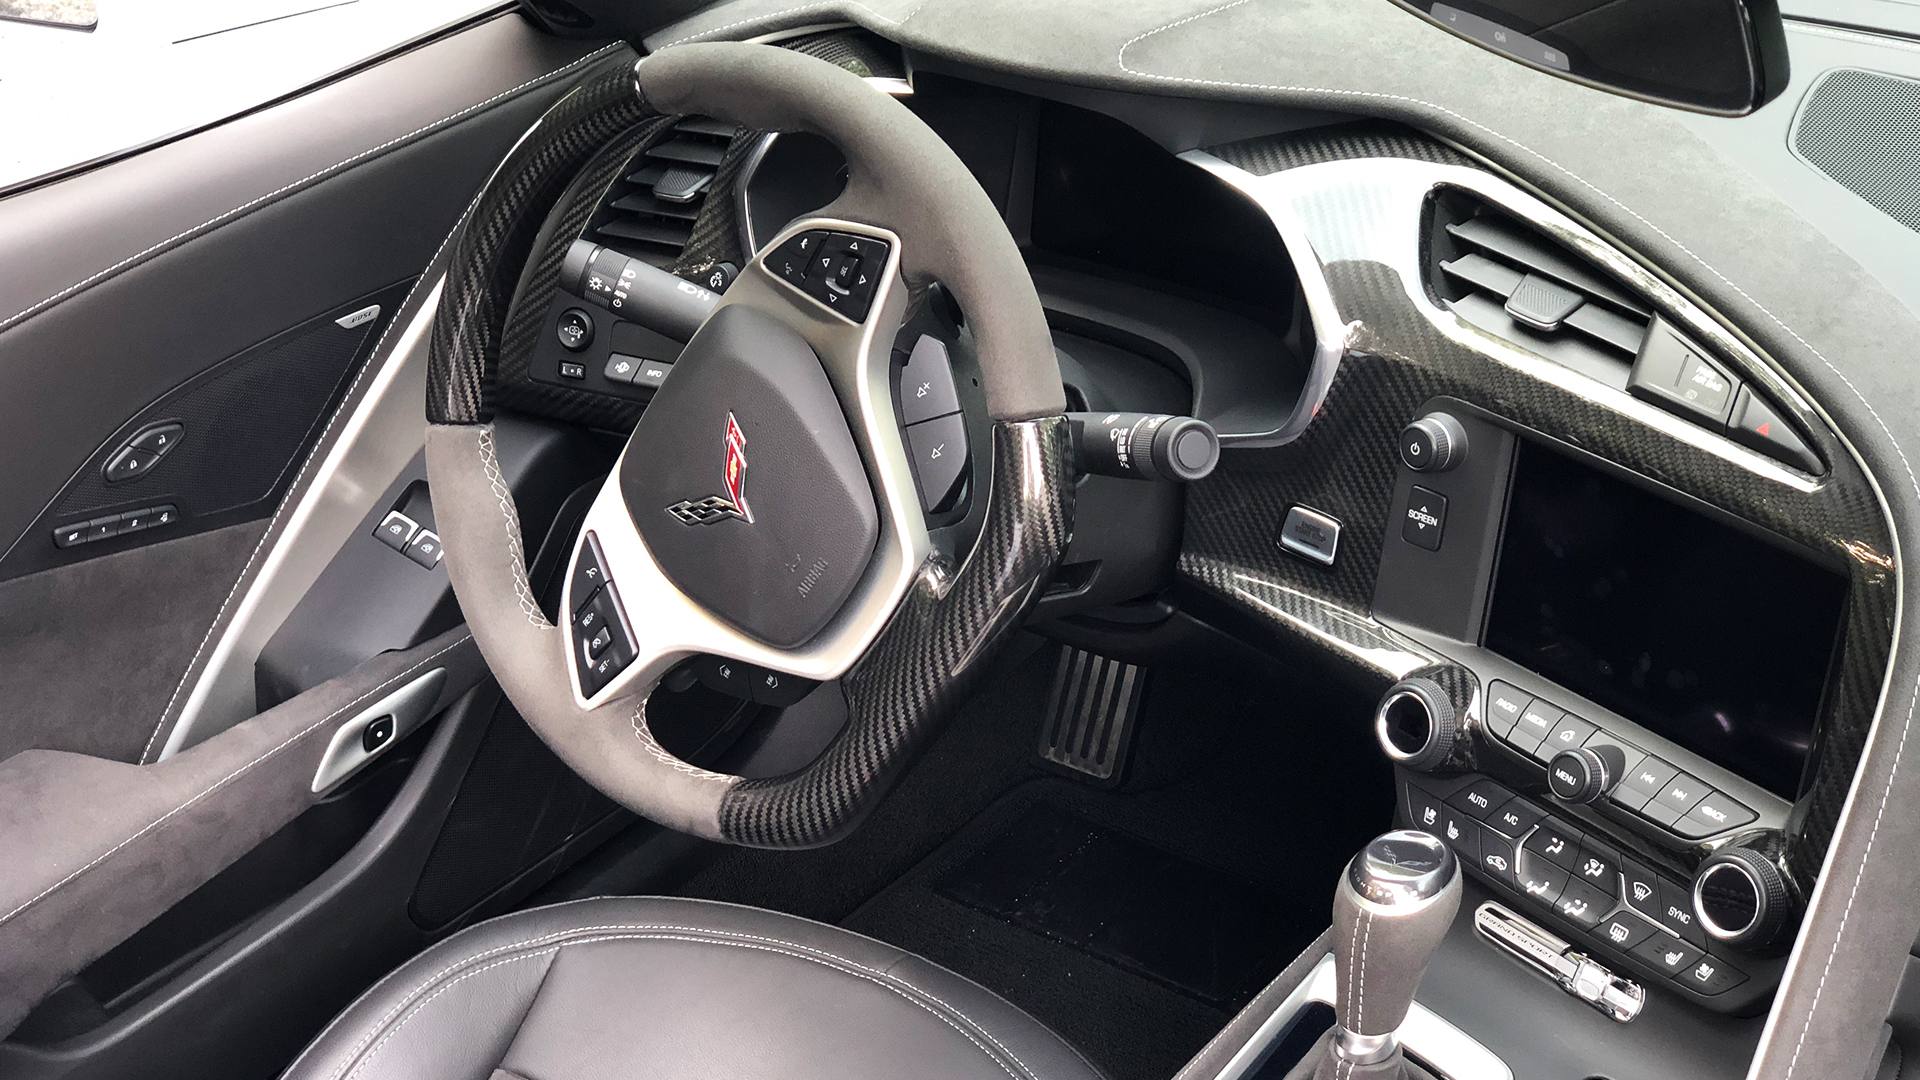 2019 Chevrolet Corvette Grand Sport Convertible interior picture